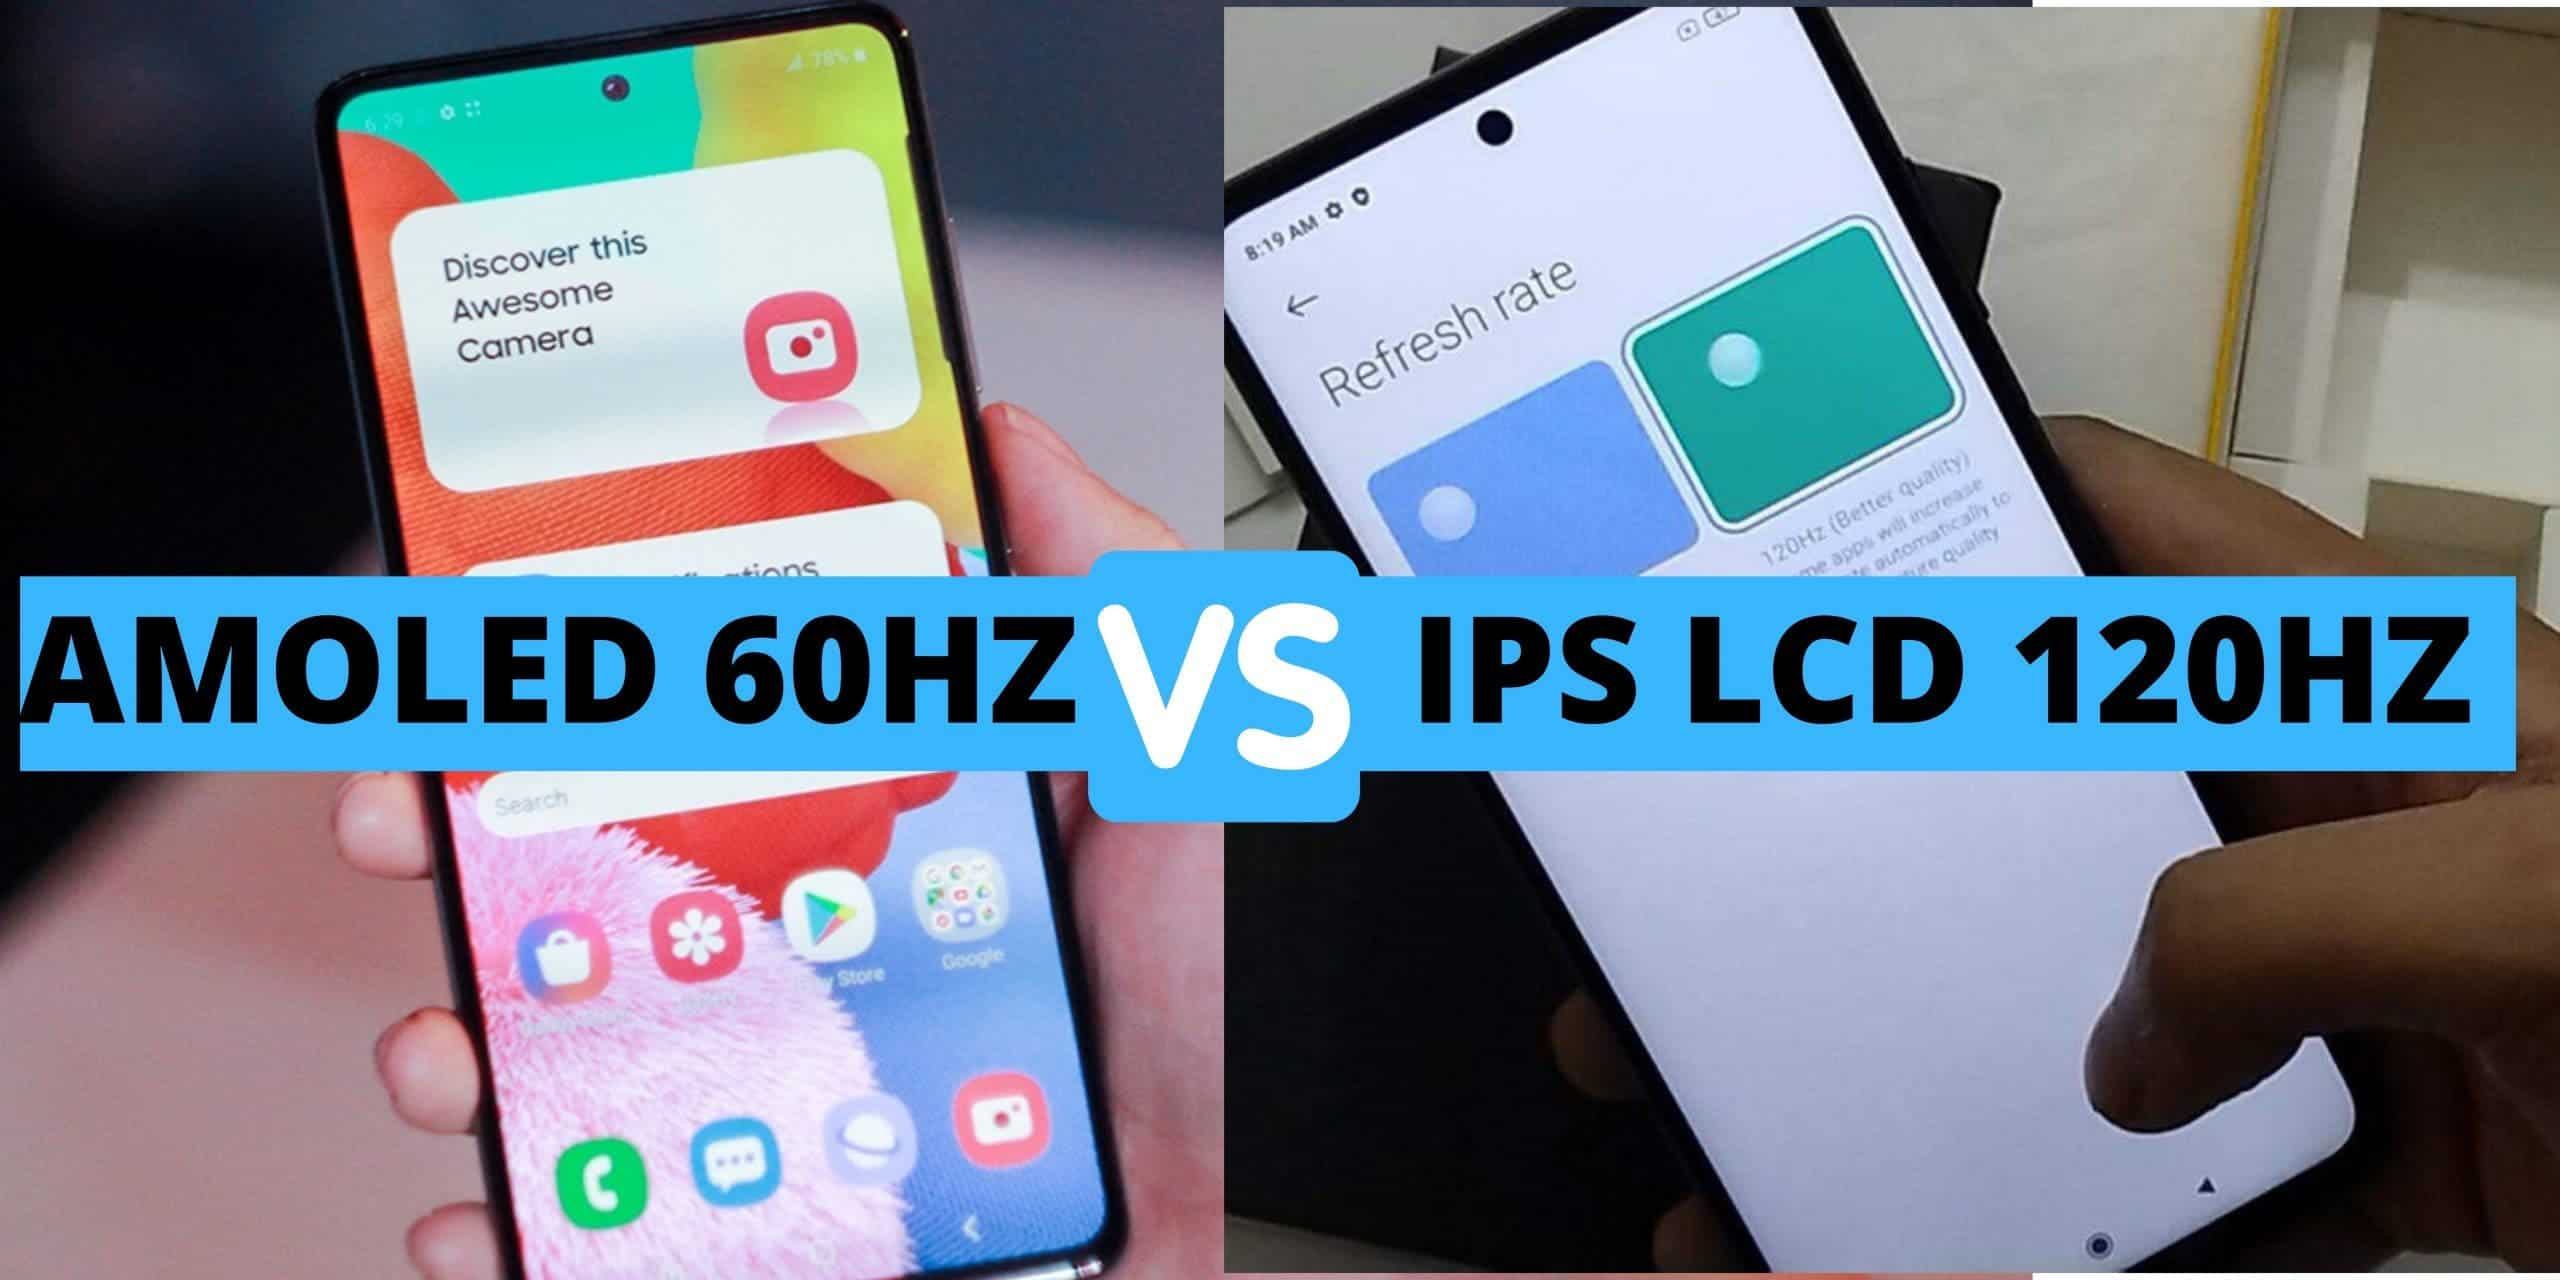 AMOLED 60Hz VS IPS LCD 120Hz